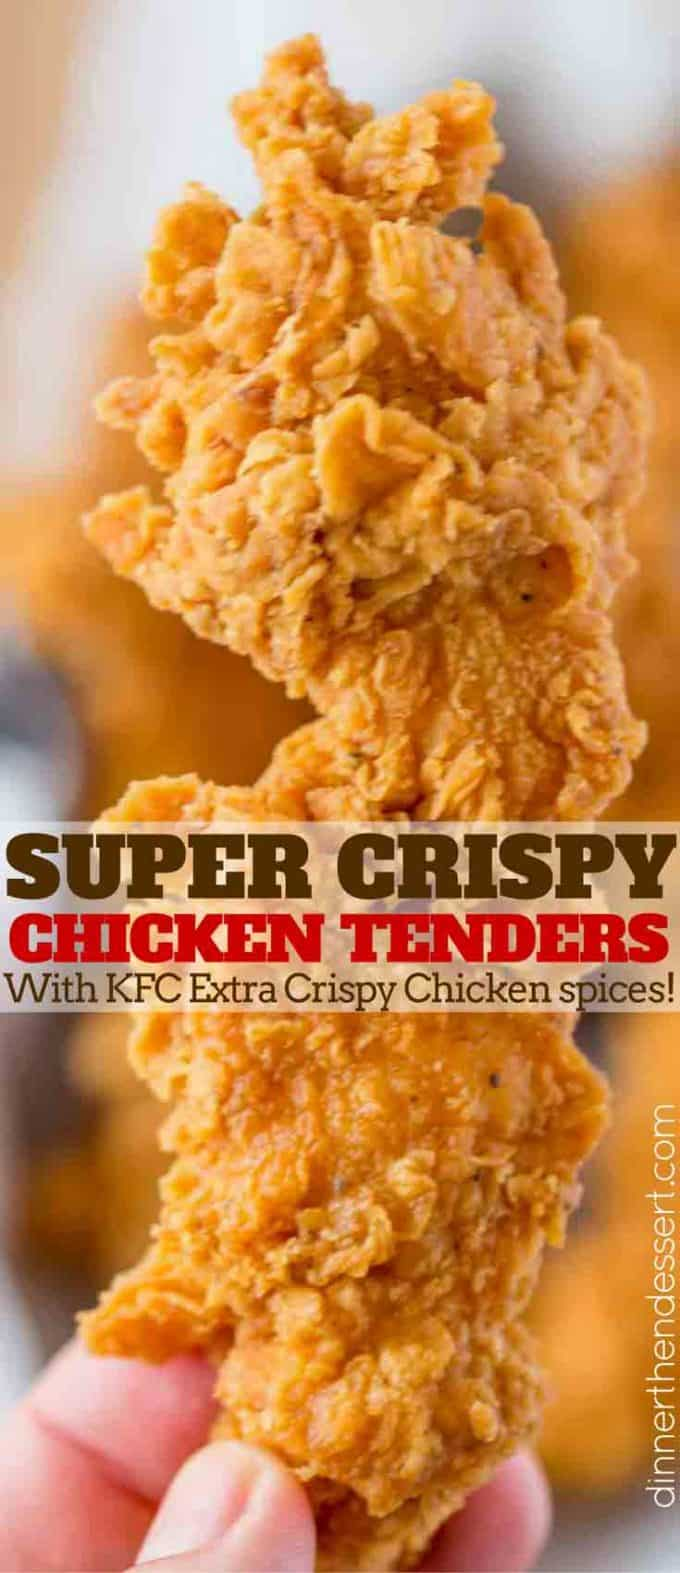 Super Crispy Chicken Tenders